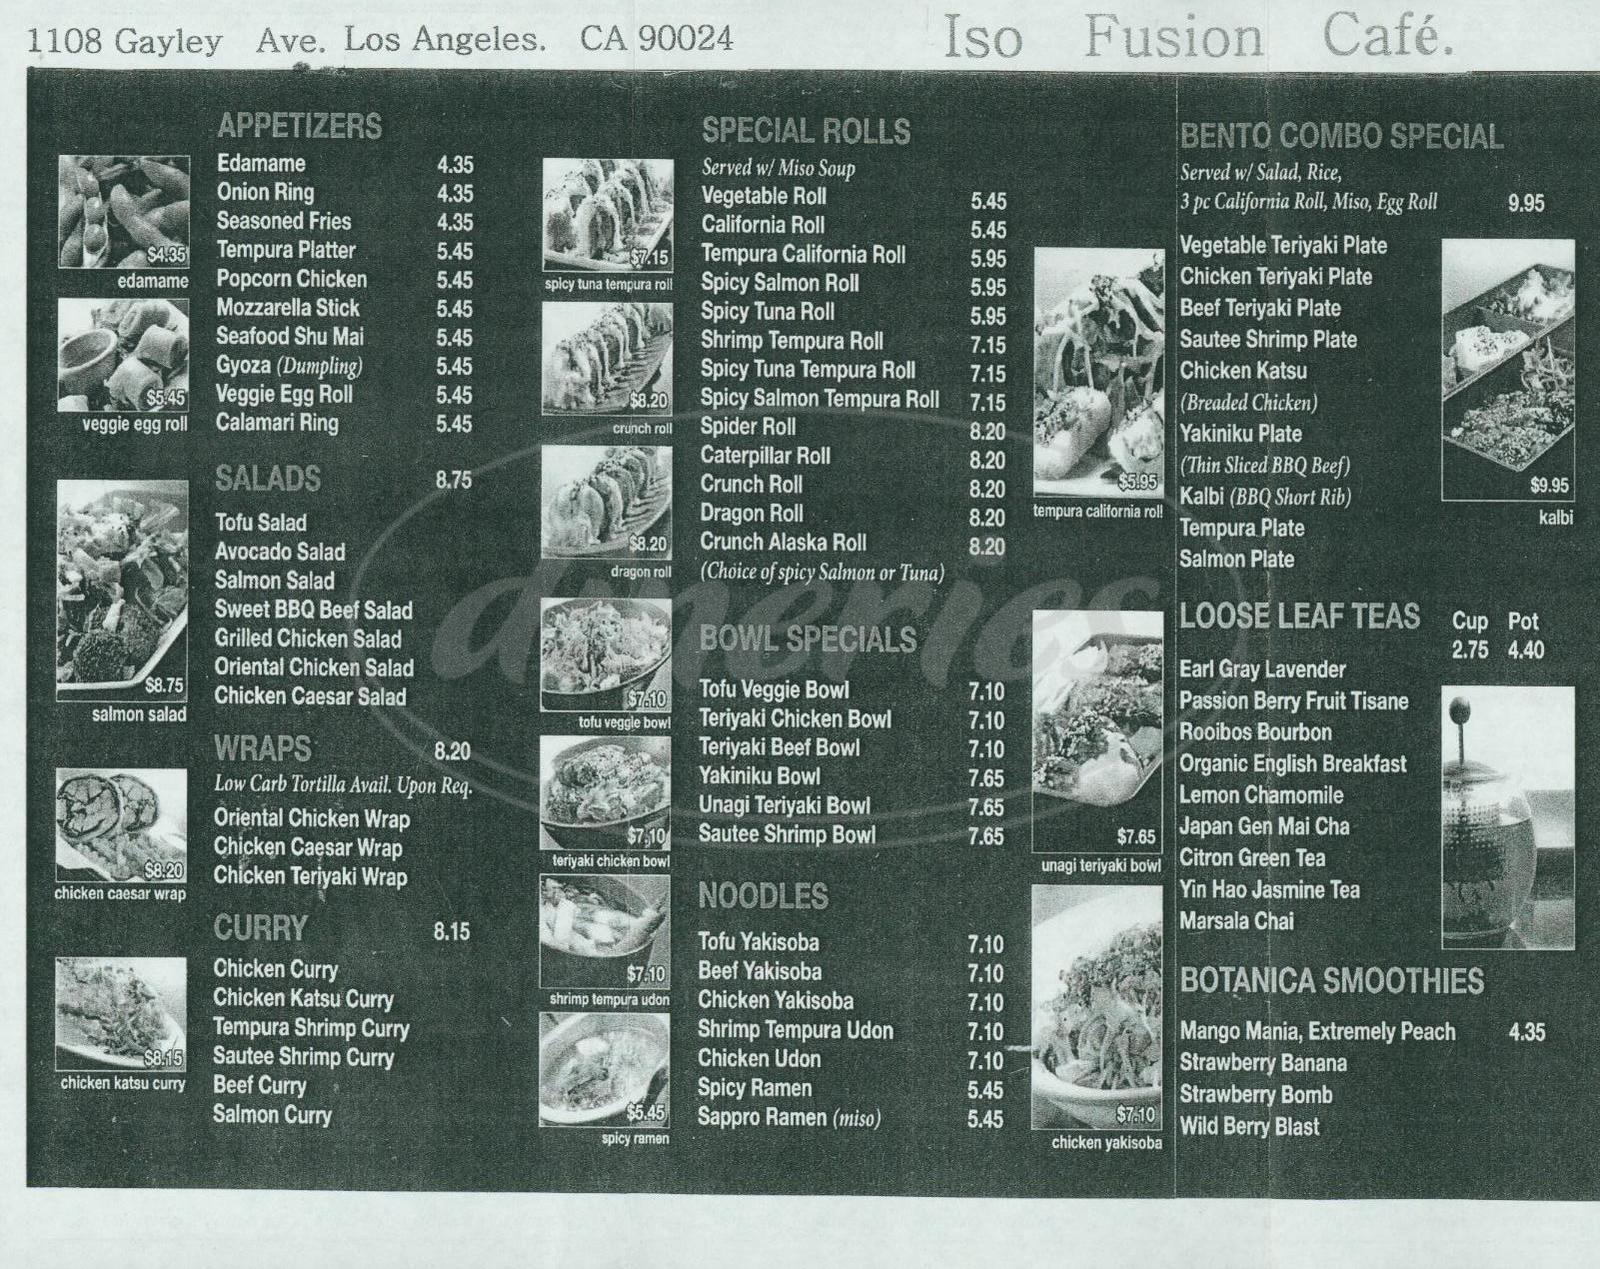 menu for Iso Fusion Café